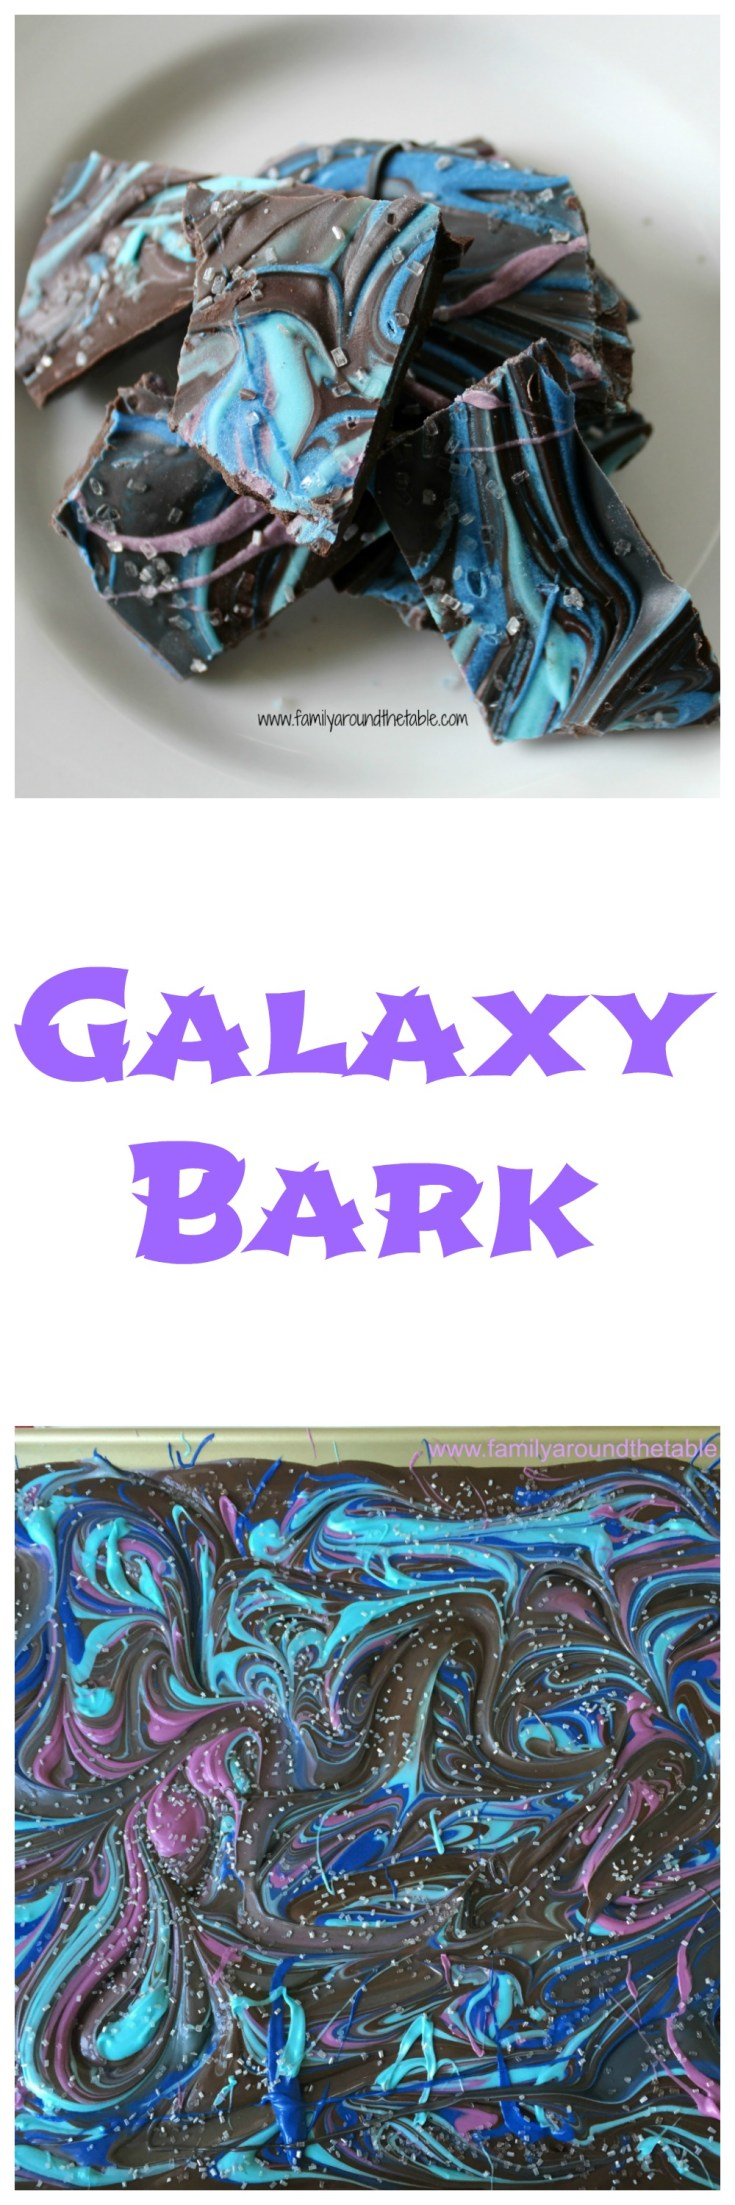 If you have Star Wars fans they will love this Galaxy Bark.